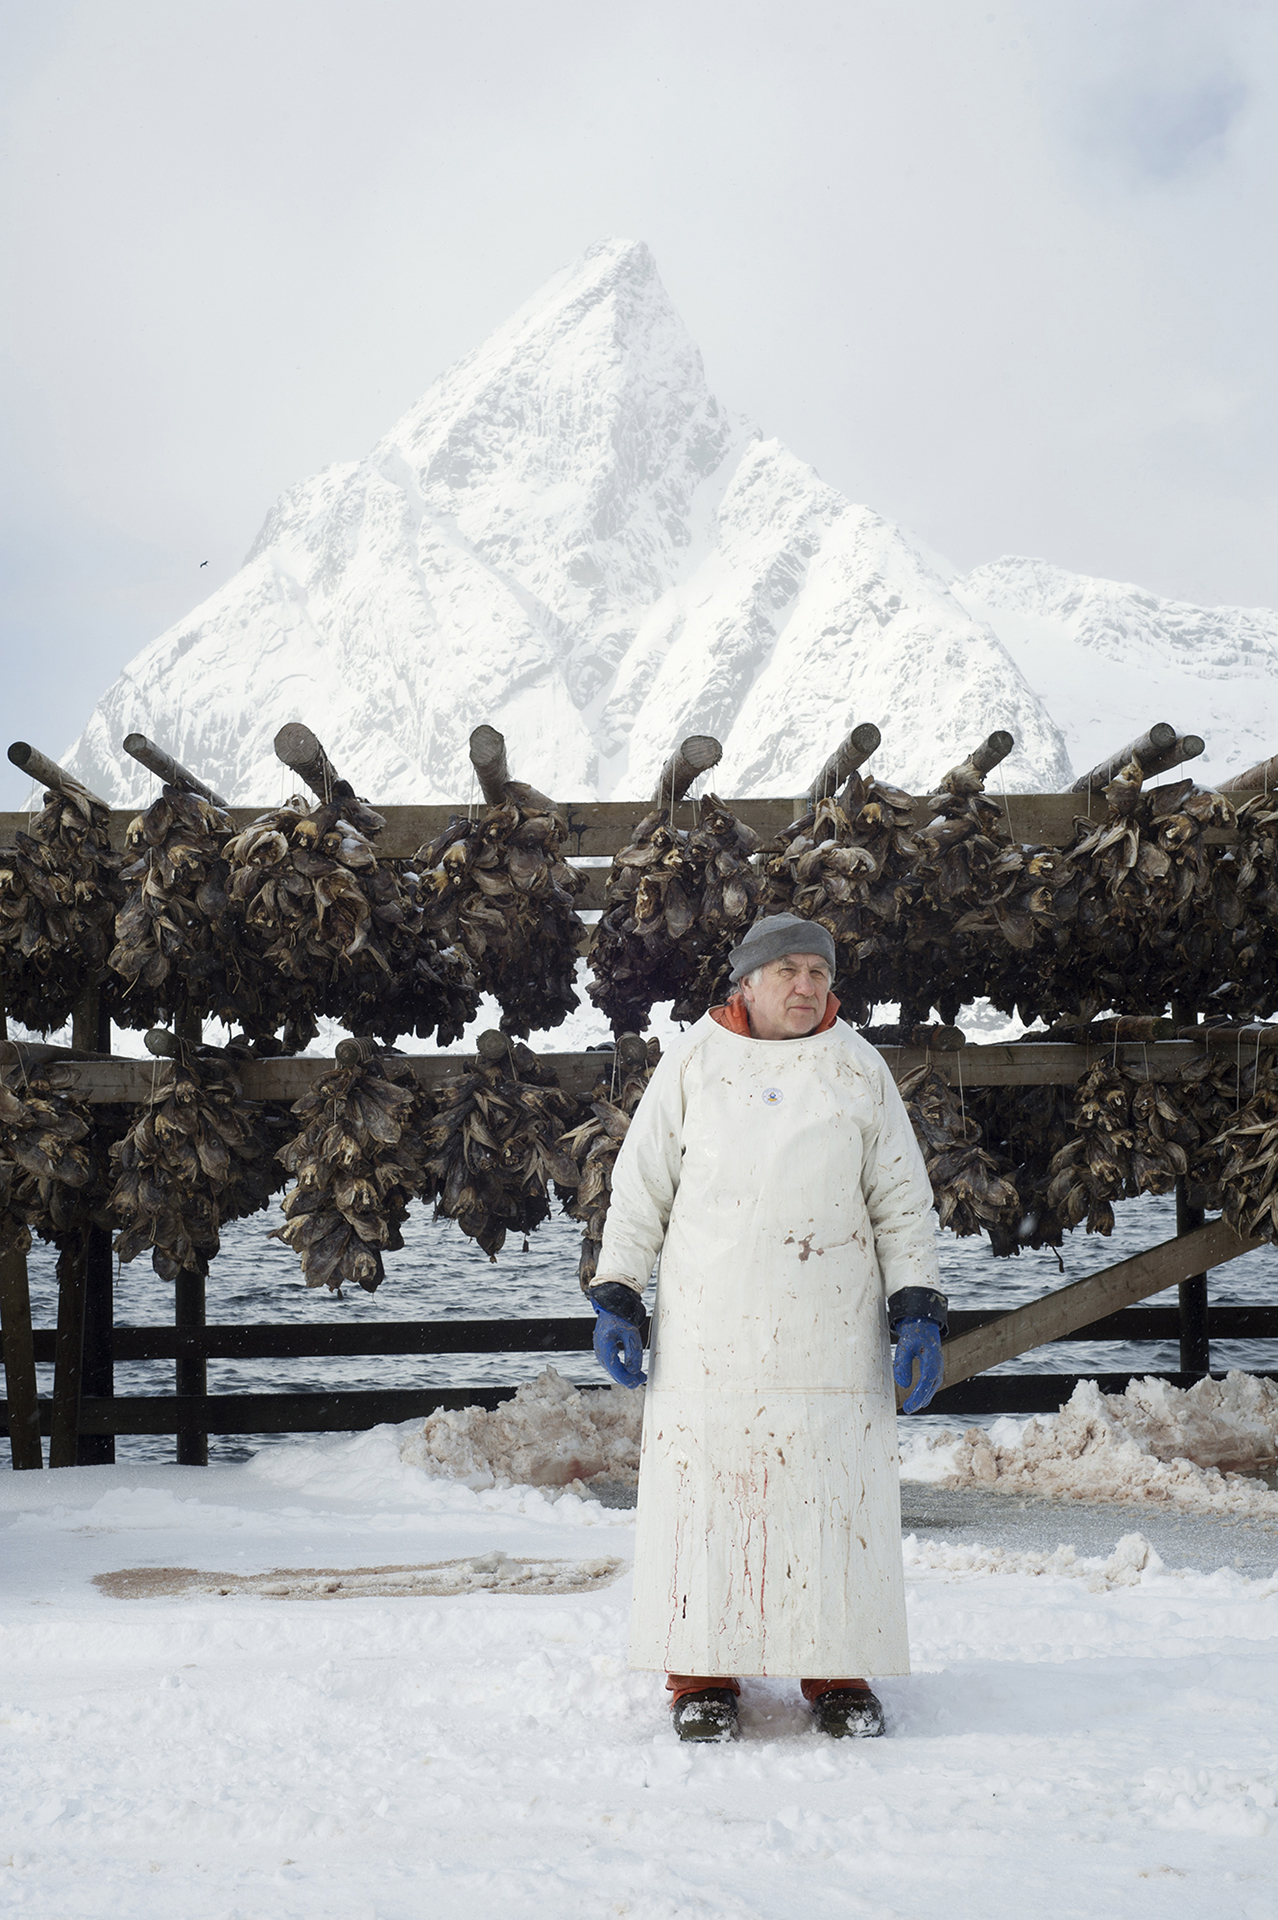 Ever since the age of the Vikings cod fishery has had a great impact on economy, employment and settlement along the coast of Norway.  Most of these photographs are from the book The Lofoten Fishery, published in 2017.